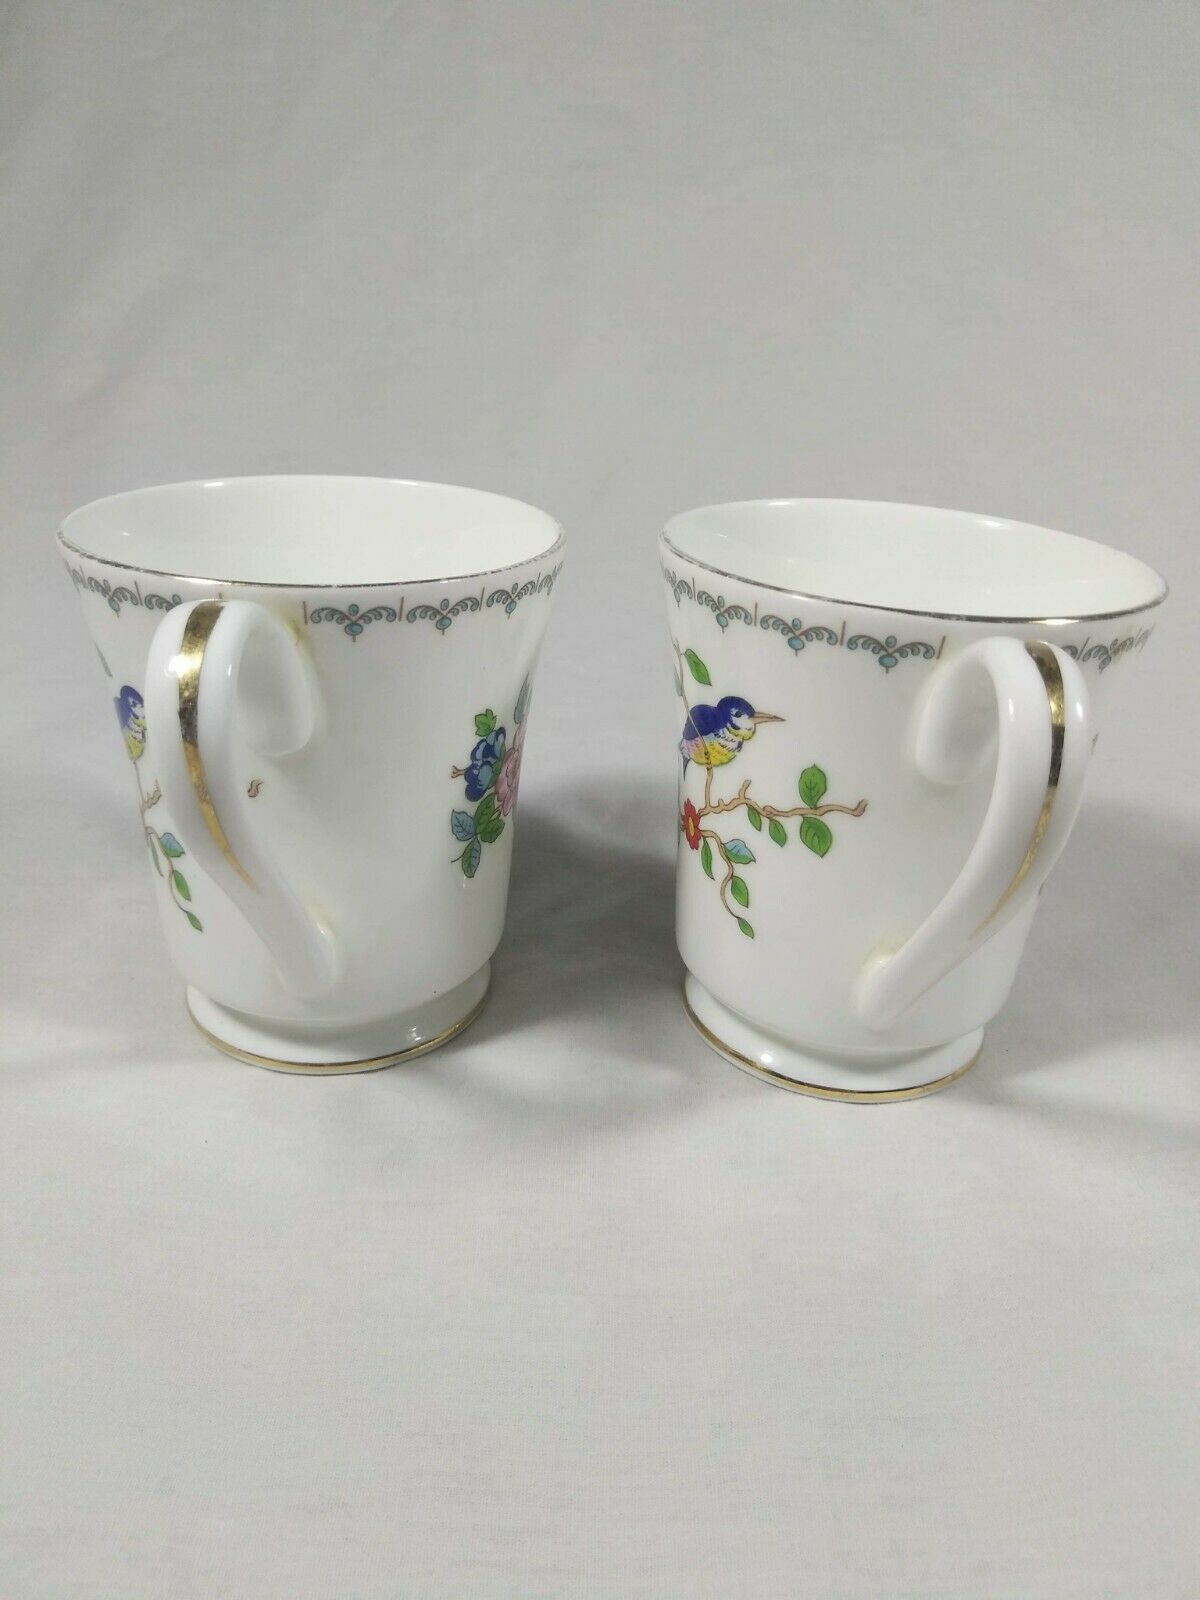 Aynsley Pembroke Tea Cups Fine English Bone China Birds Floral Set of 2 Mugs image 4